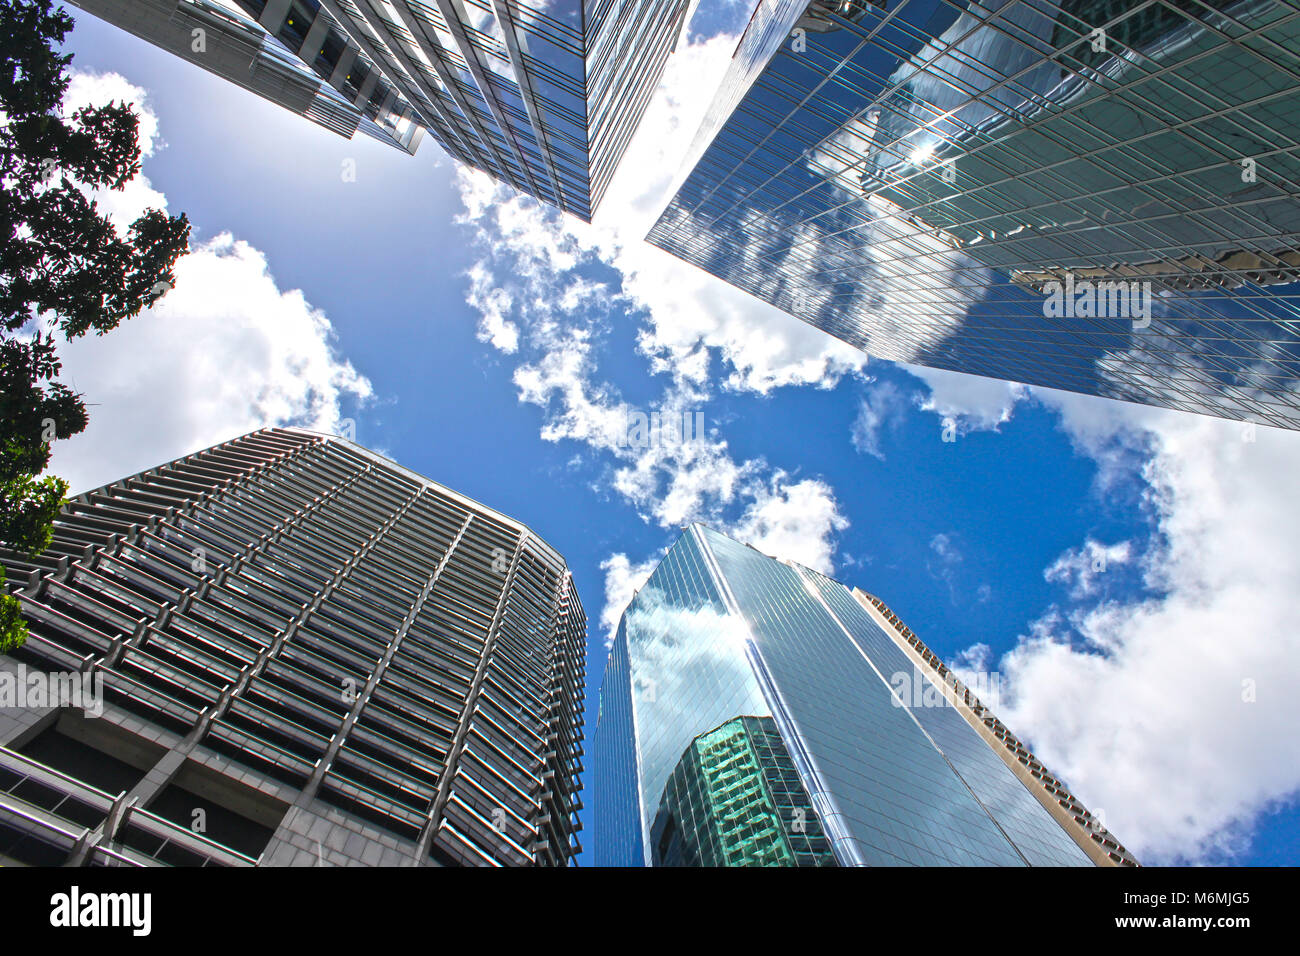 View looking up at blue cloudy sky through skyscrapers reflecting clouds and other buildings in CBD Brisbane Queensland - Stock Image